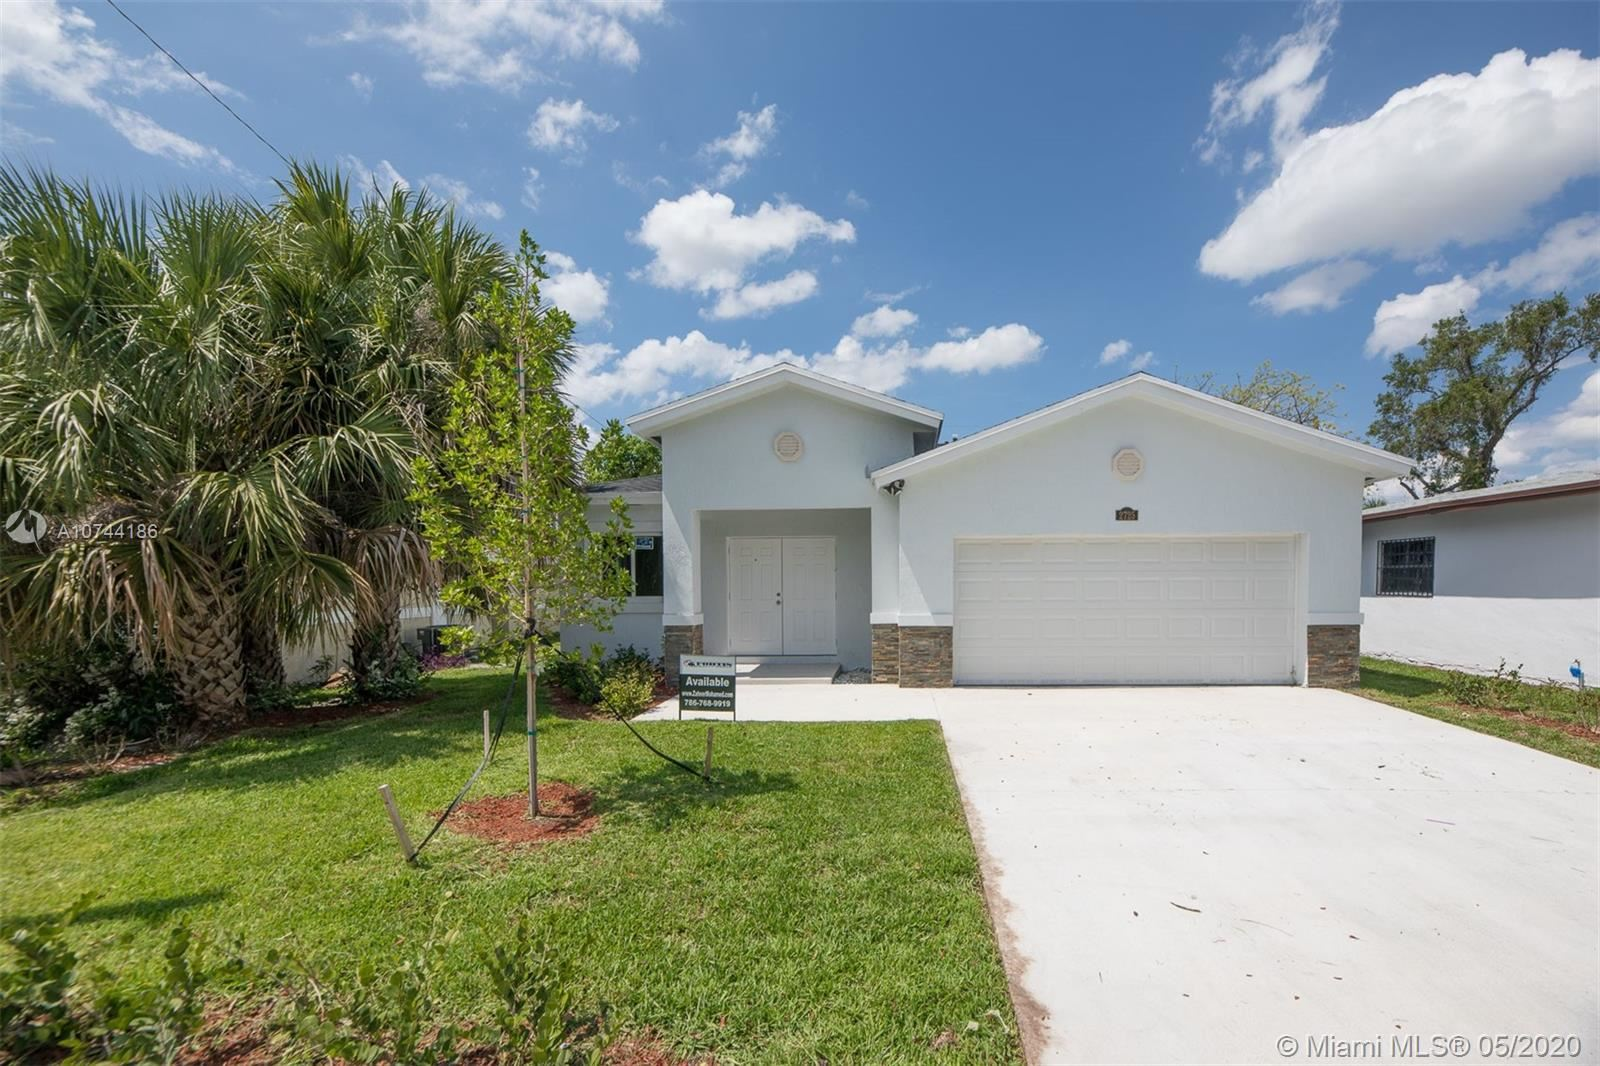 2725 NW 7th Court, Fort Lauderdale, FL 33311 - MLS#: A10744186